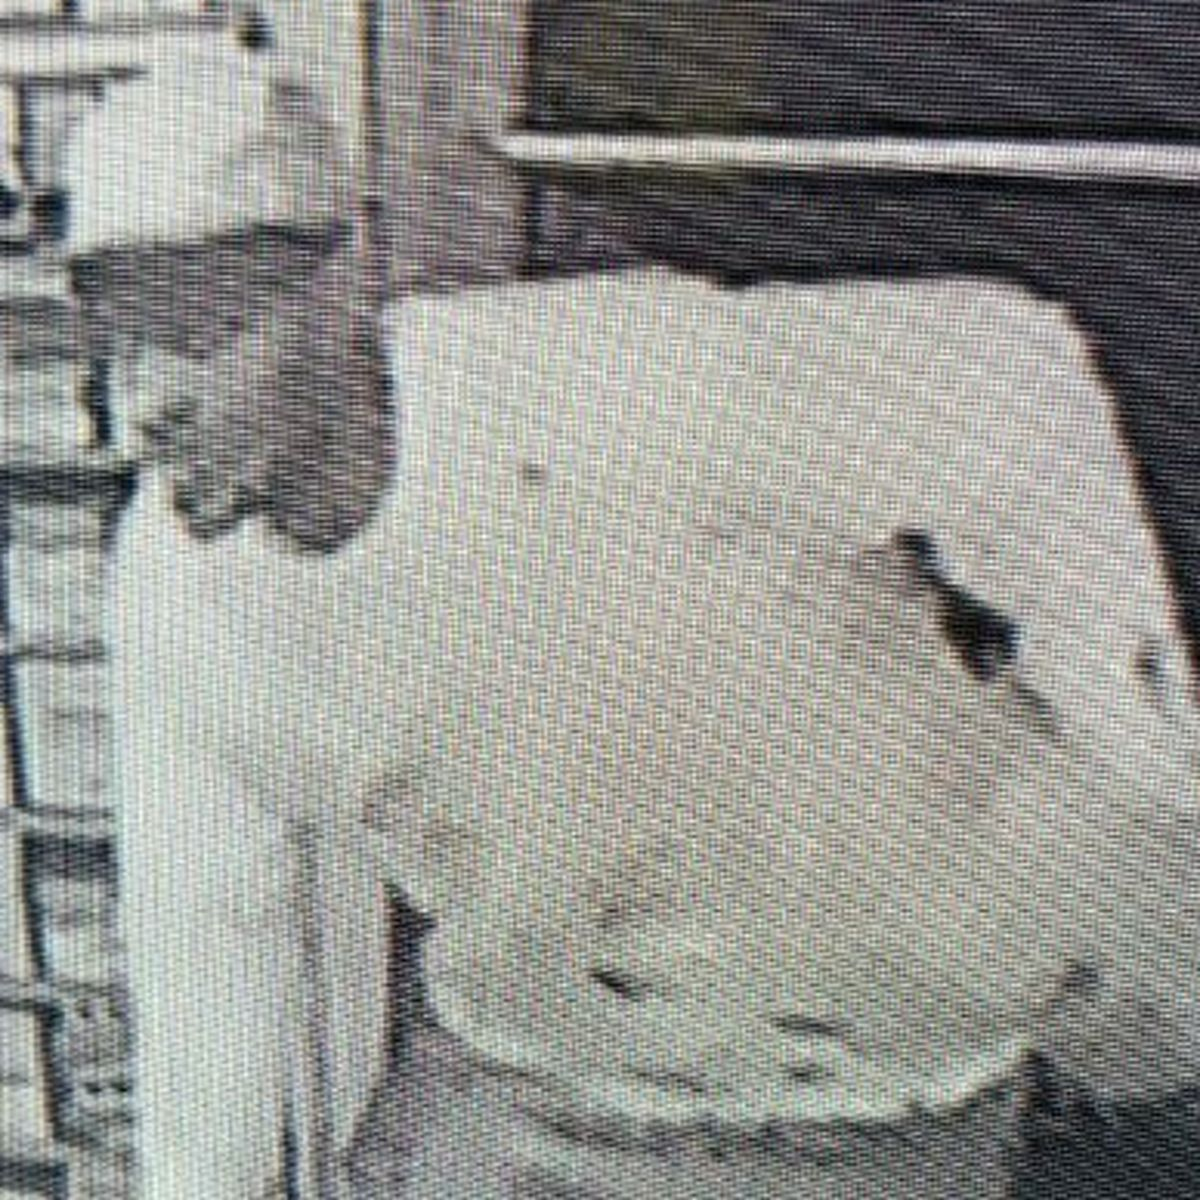 Prattville police searching for convenience store burglary suspect